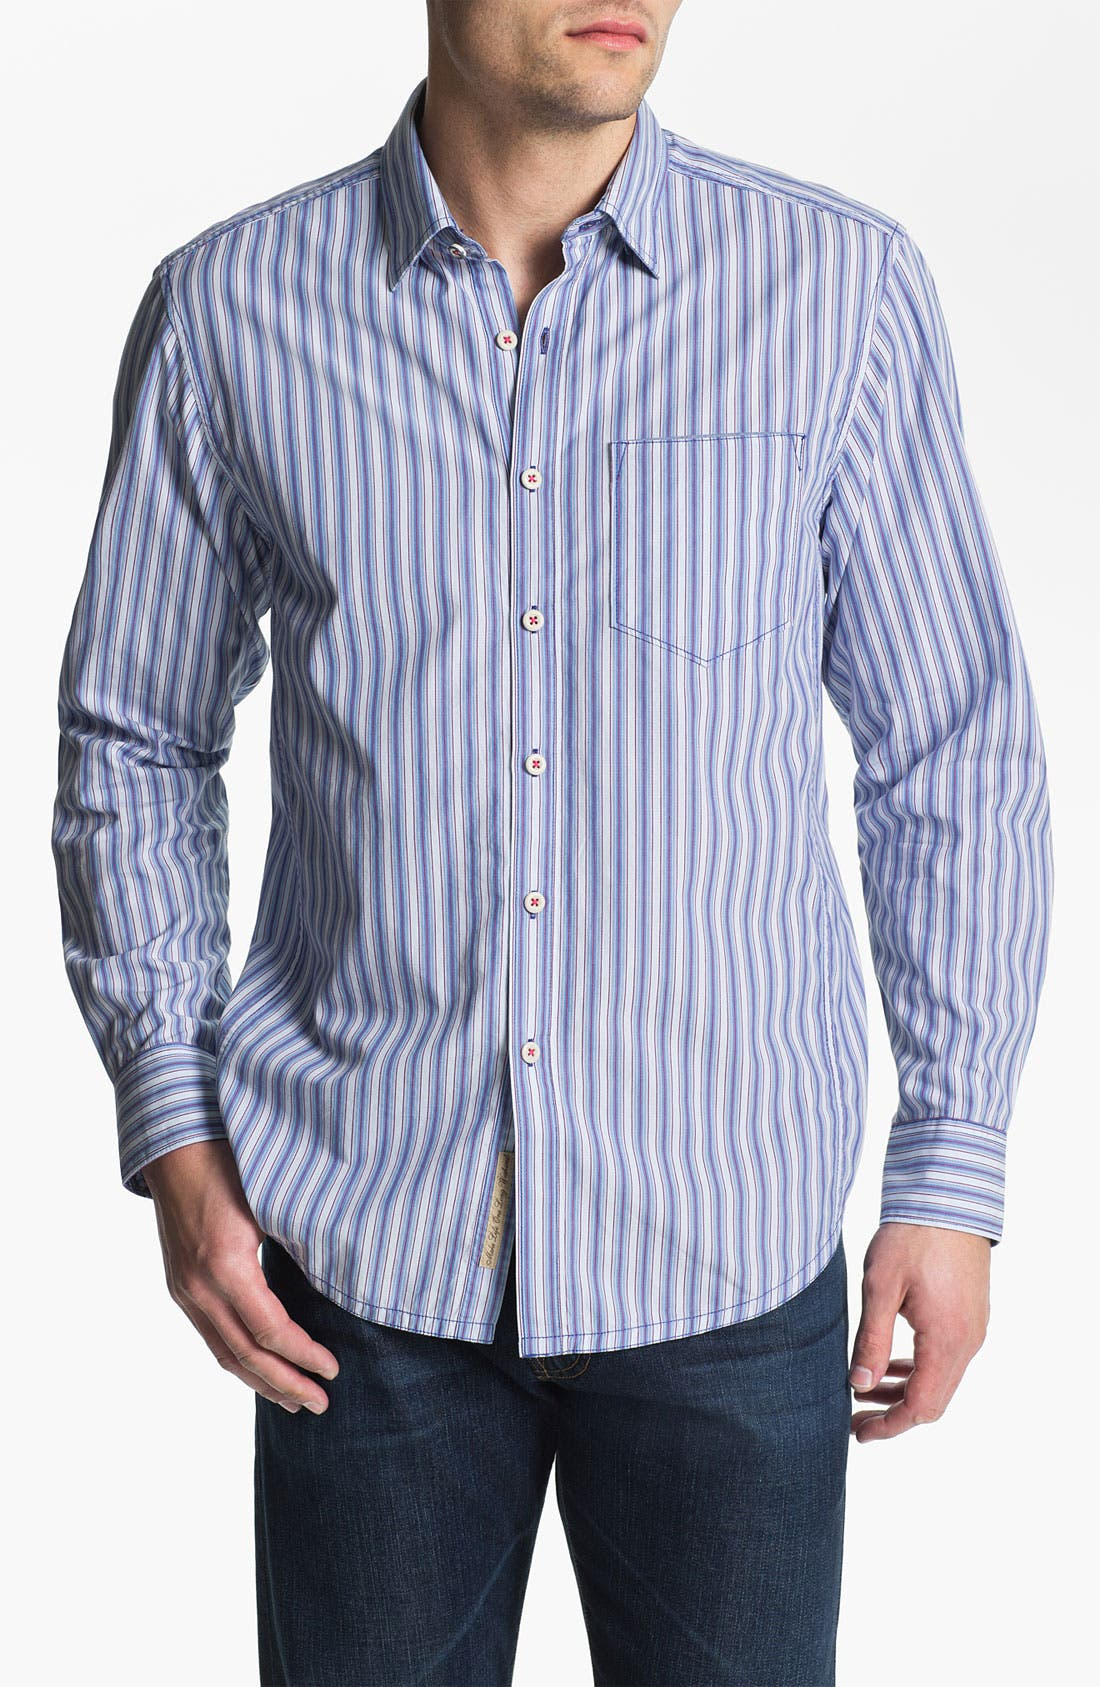 Alternate Image 1 Selected - Tommy Bahama Denim 'Stripe Tease' Sport Shirt